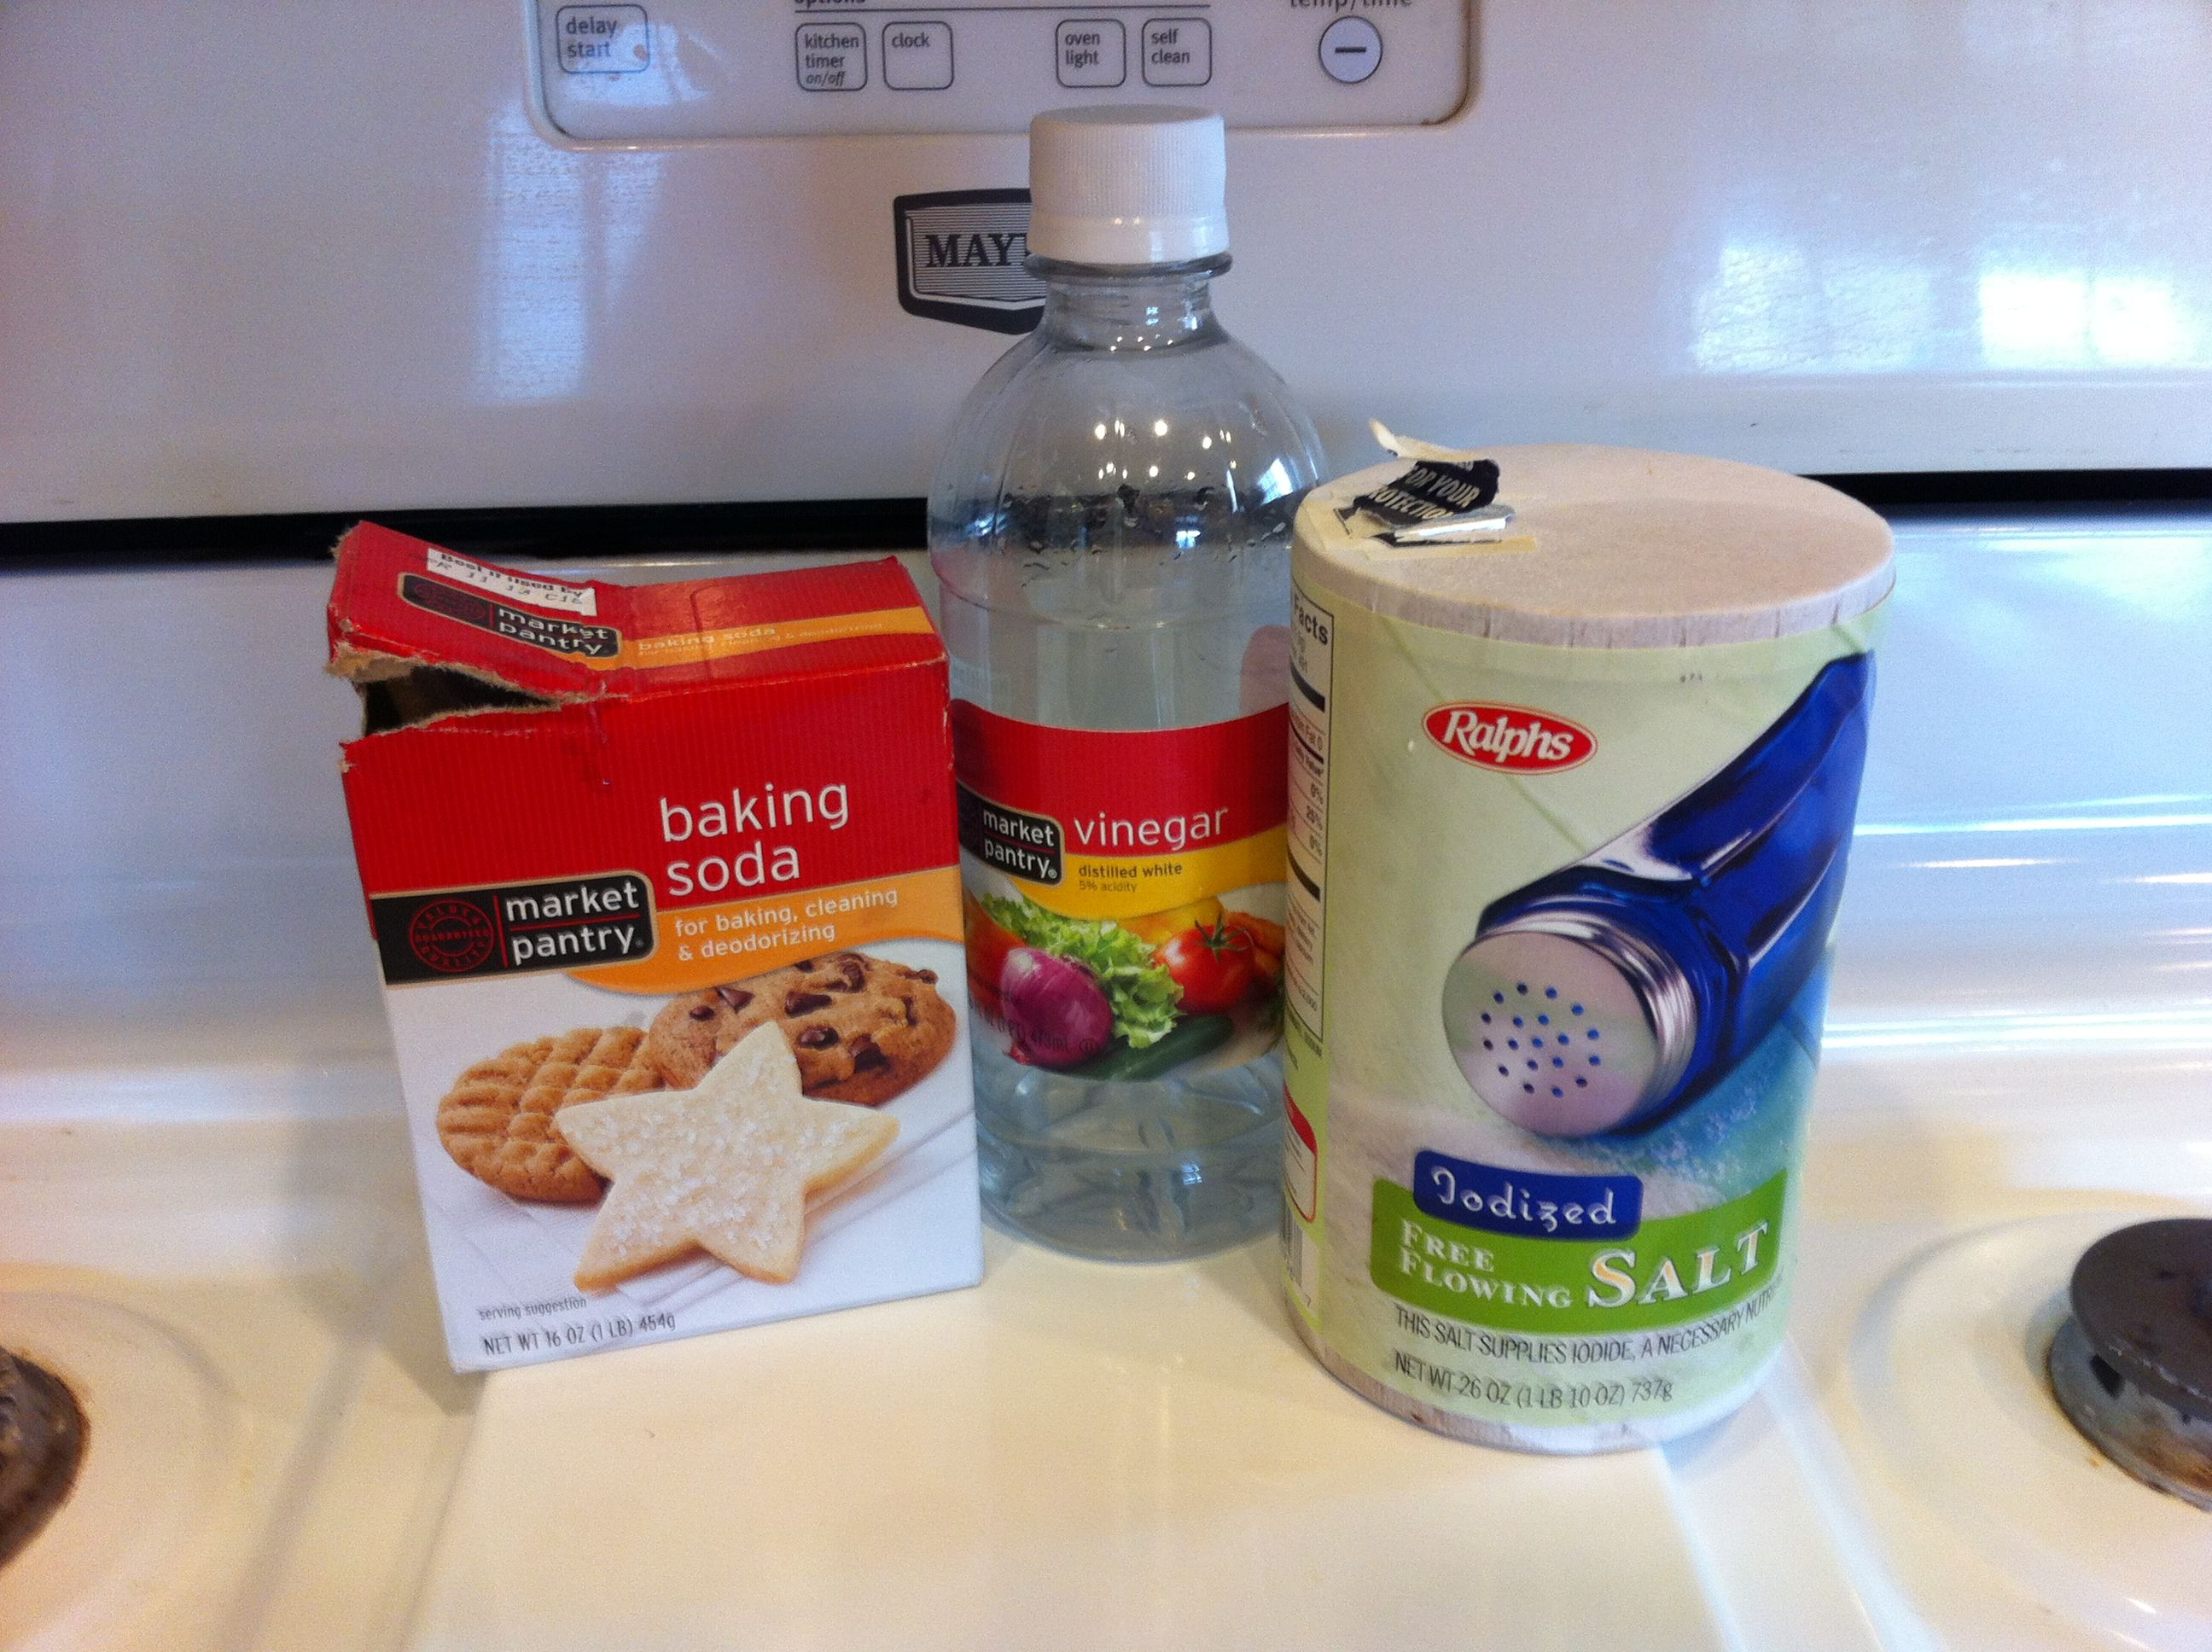 Best 3 Ings To Clean Your Enamel Stovetop Amazing First Sprinkle Table Salt Then White Vinegar Followed By Baking Soda